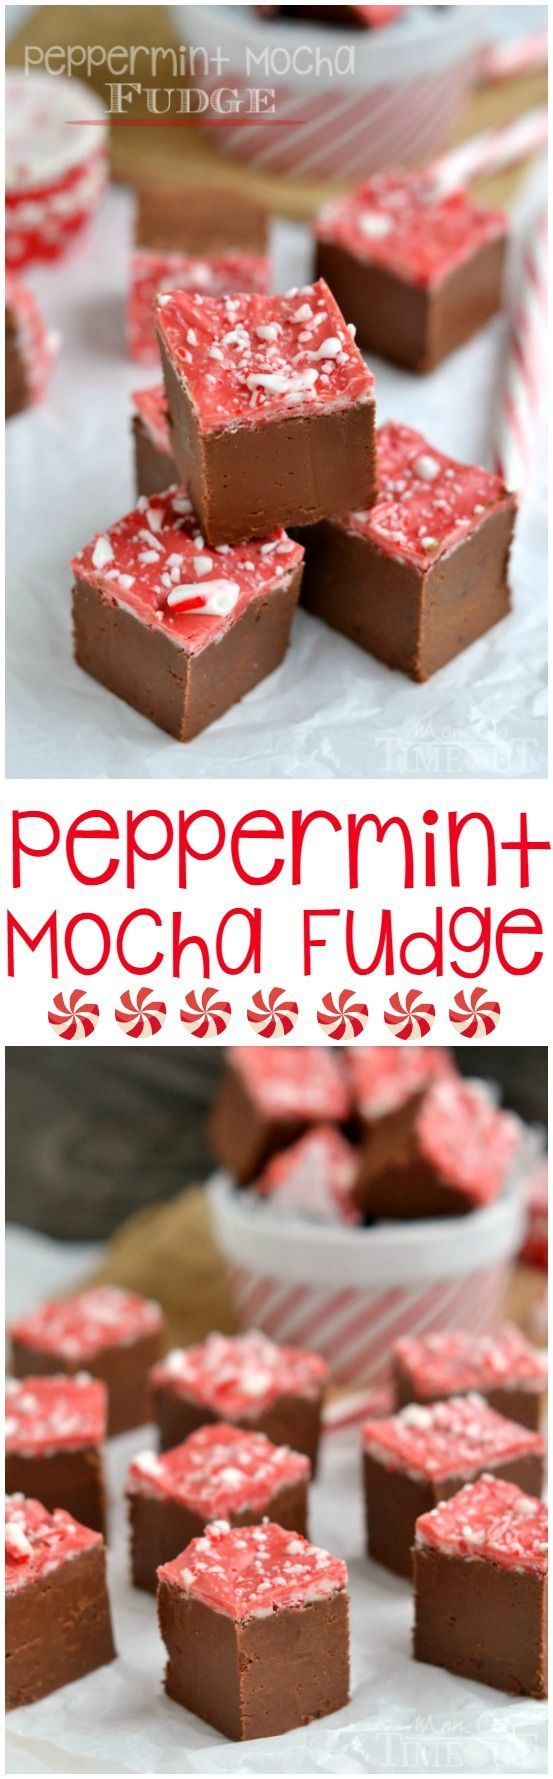 This Peppermint Mocha Fudge is just BEGGING to be served up at your holiday celebration! Perfectly festive and easy too!